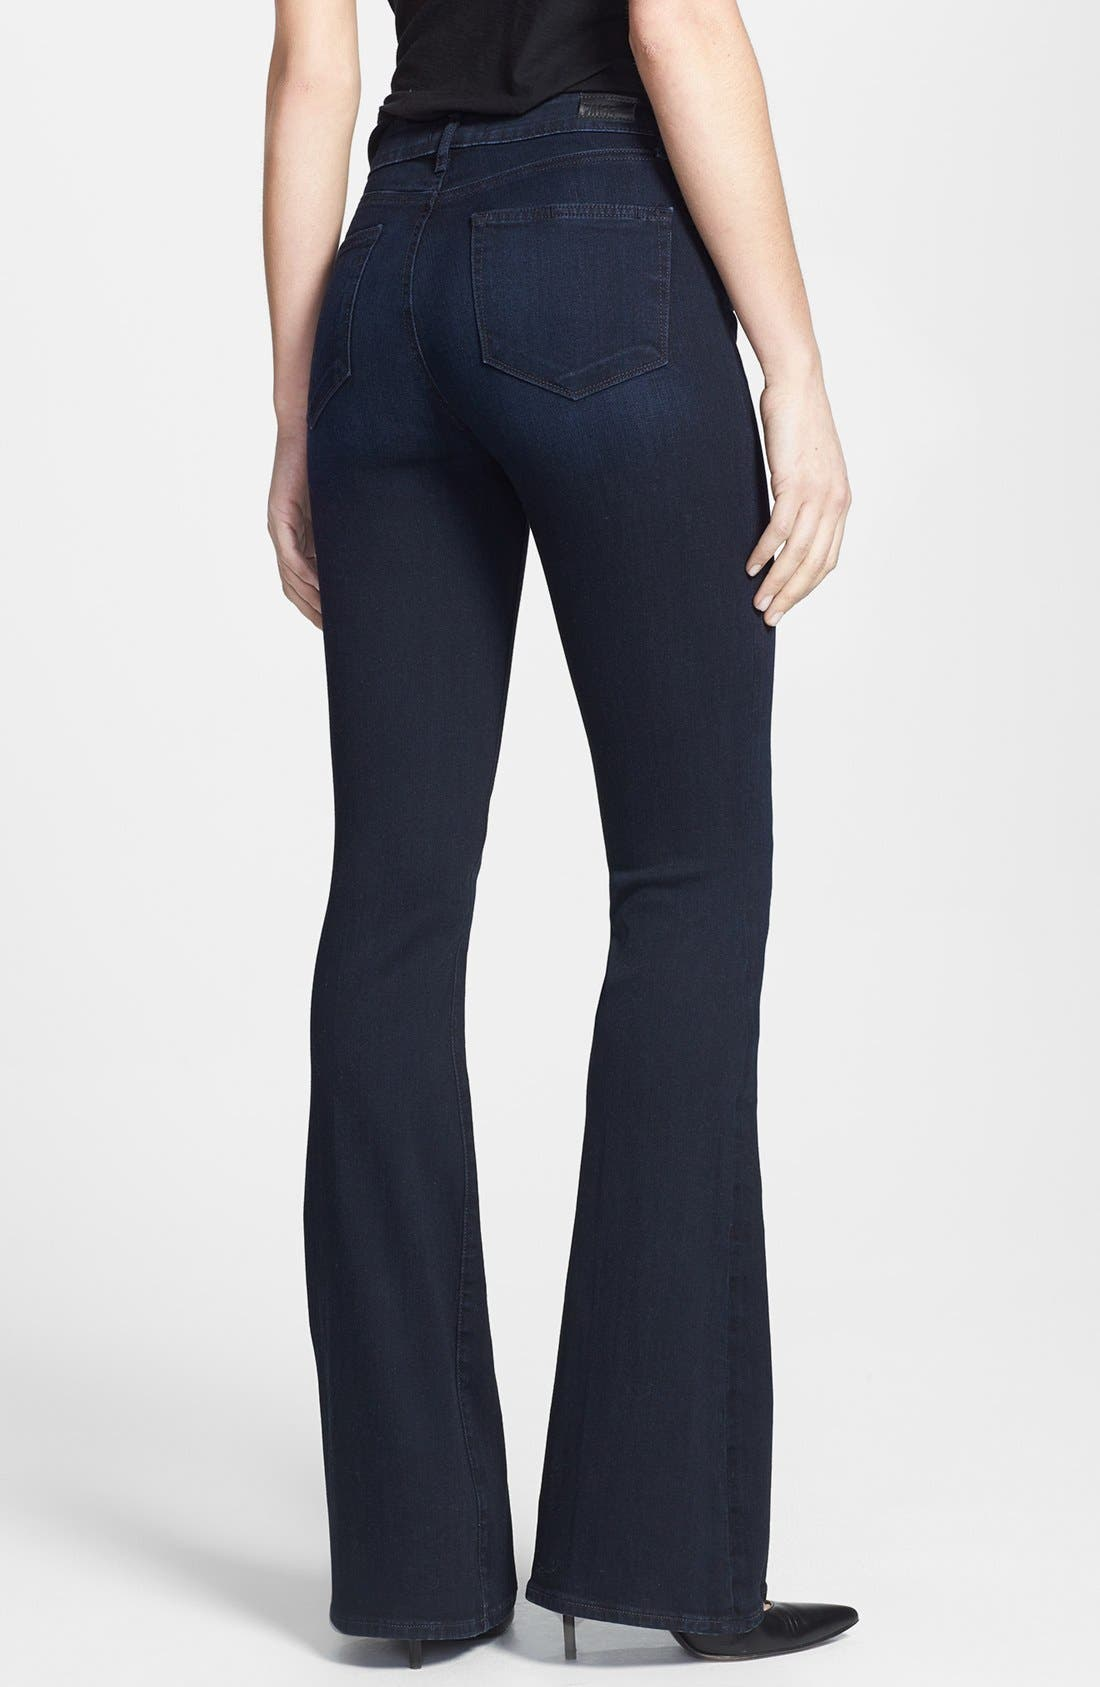 Alternate Image 2  - Paige Denim 'Canyon' High Rise Bell Bottom Jeans (Peyton)